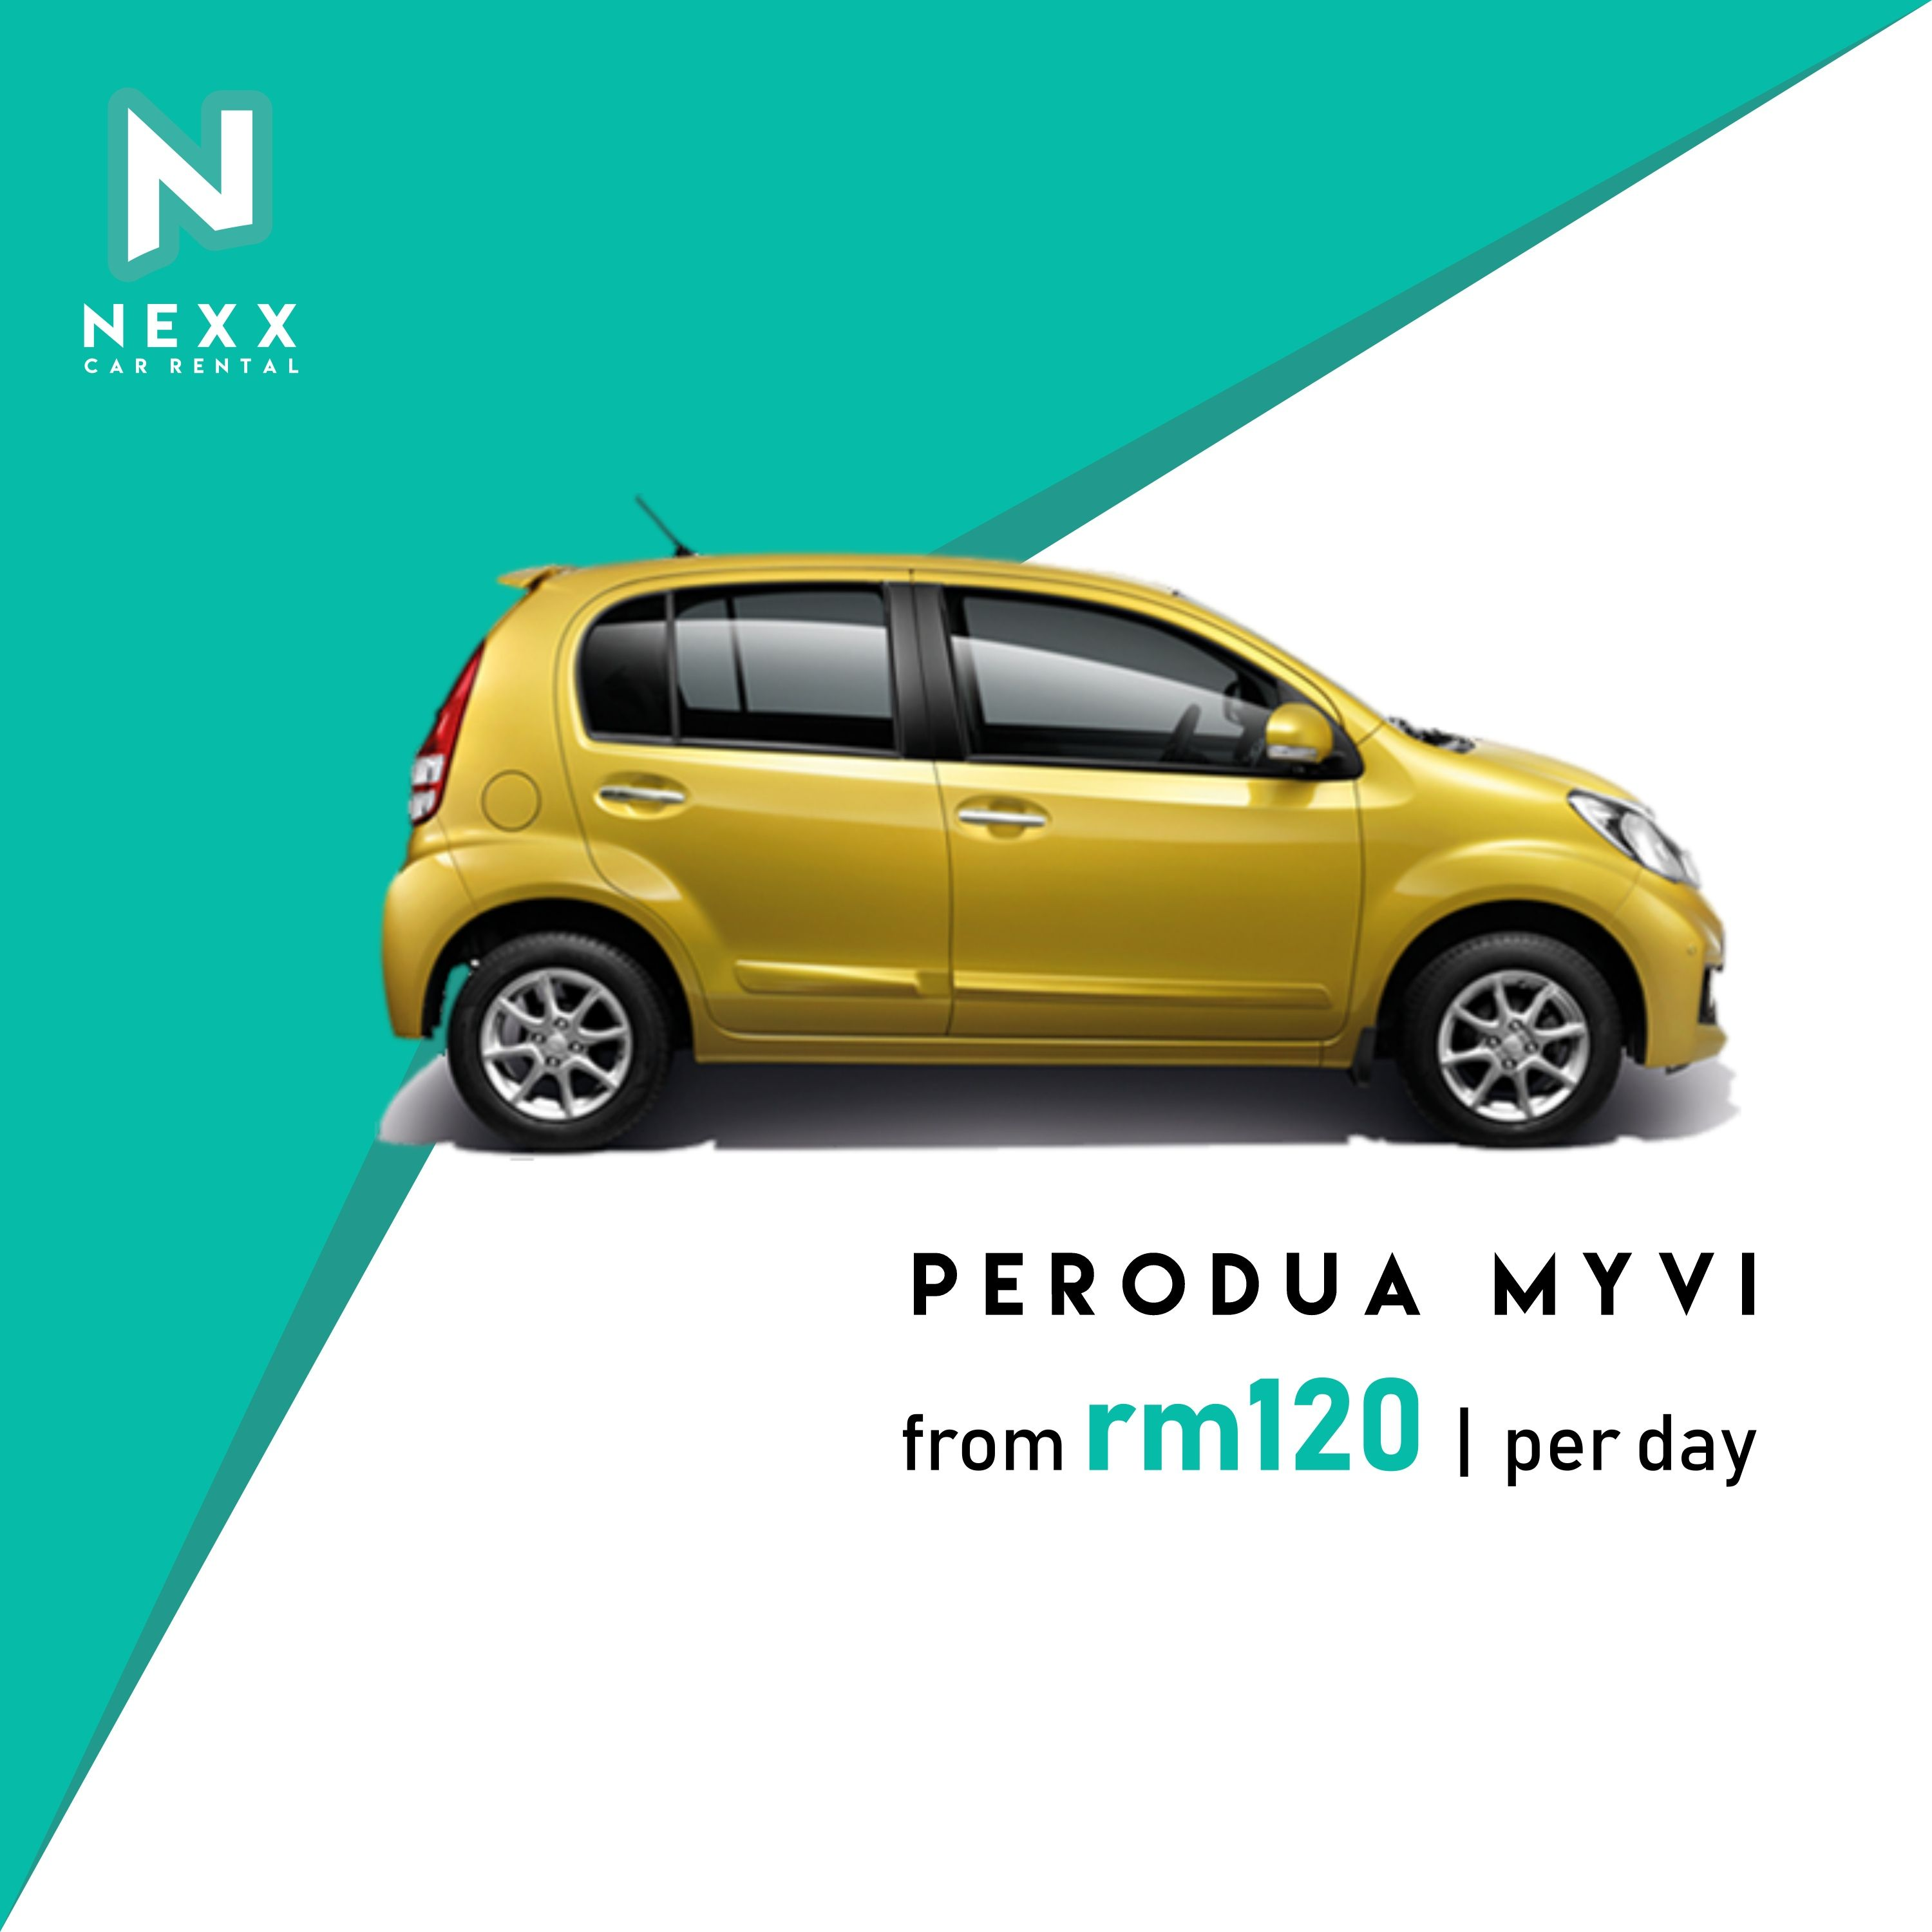 Perodua Myvi Rental Sewa Low Deposit The Most Famous Malaysian Made Compact Comes With A Powerful Punch Of Torque And Cabin Car Rental Kuala Lumpur Rental